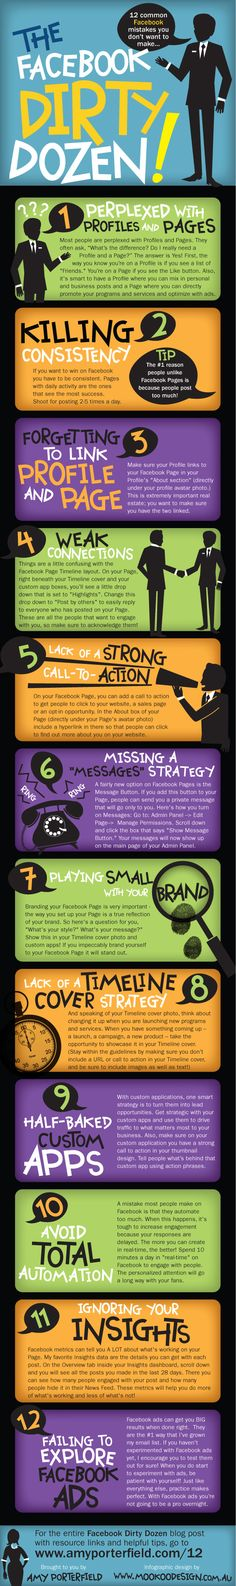 The Facebook Dirty Dozen - Twelve Critical Mistakes you don't want to make when building a brand on Facebook #facebook #facebookmarketing Inbound Marketing, Internet Marketing, Facebook Marketing, Facebook Business, Marketing Digital, Content Marketing, Social Media Marketing, Online Marketing, Marketing Ideas